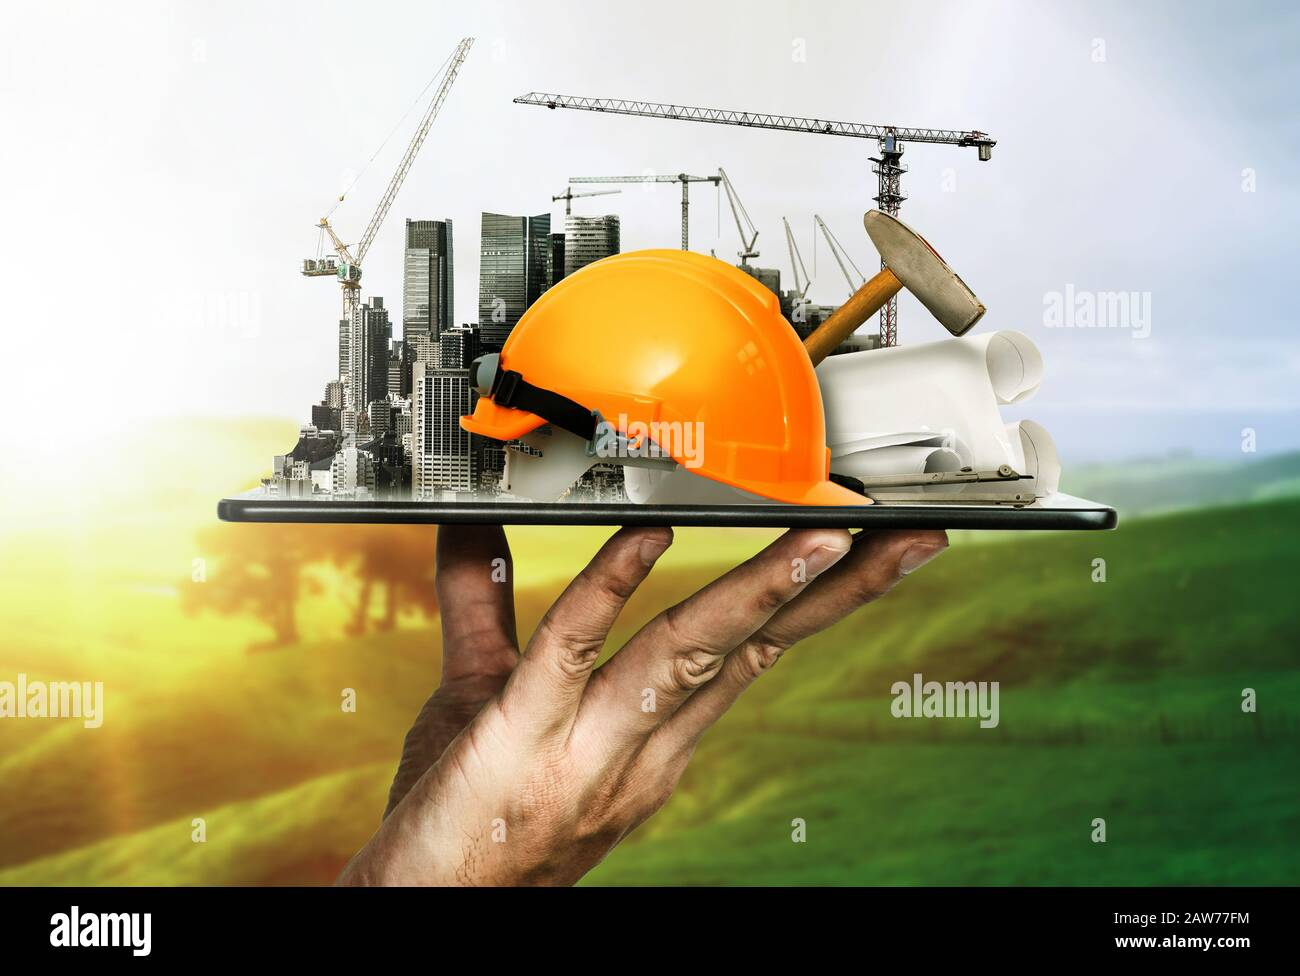 Innovative Architecture And Civil Engineering Building Construction Project Creative Graphic Design Showing Concept Of Infrastructure City Building B Stock Photo Alamy